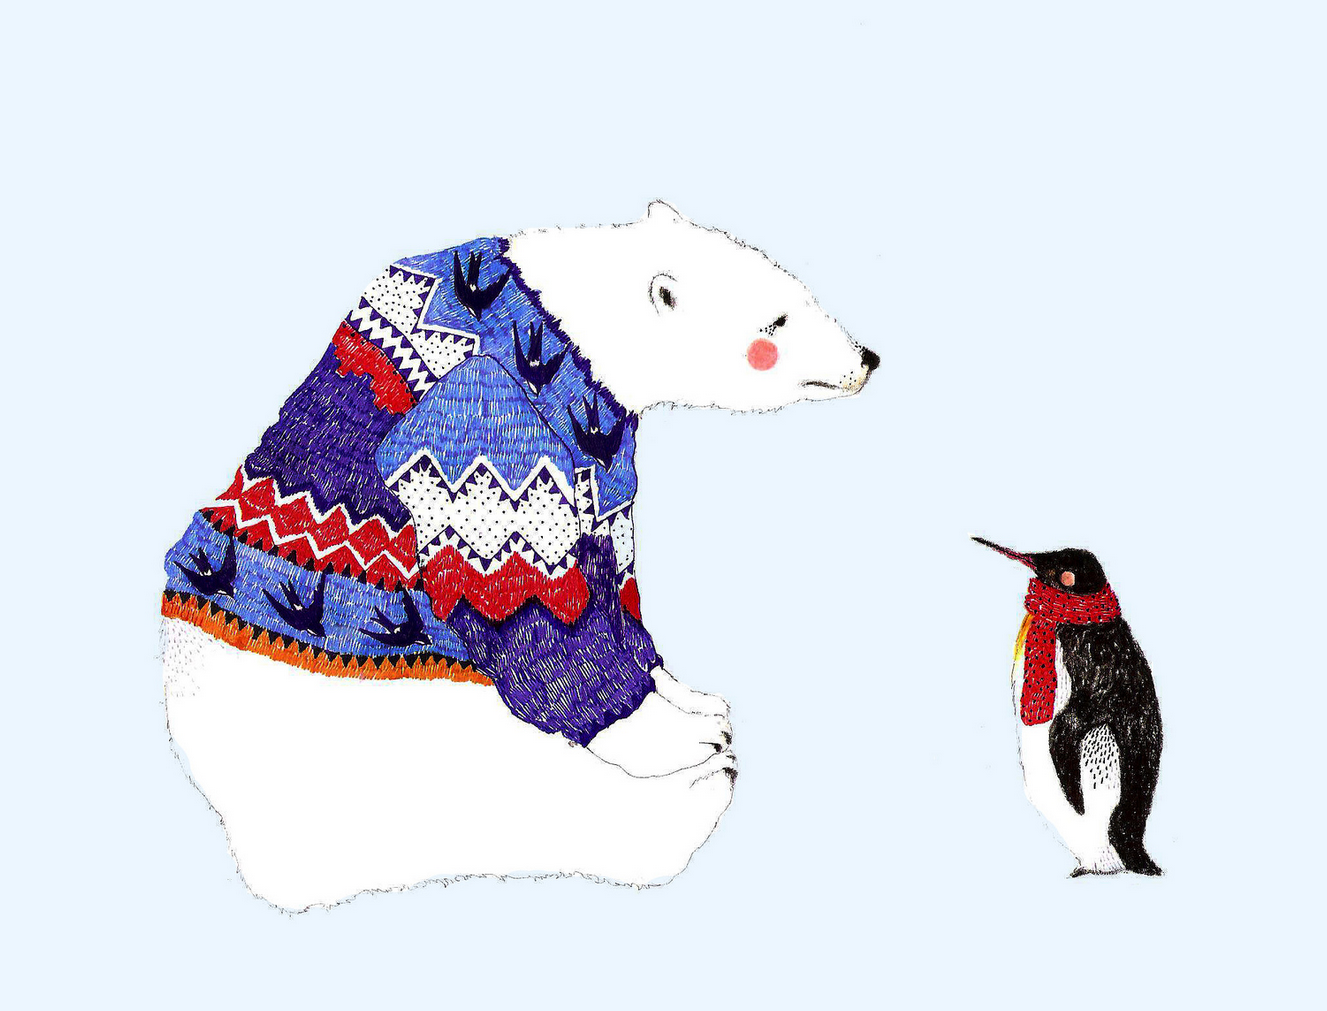 panda bear & penguin illustration by Daniela Dahf henriquez